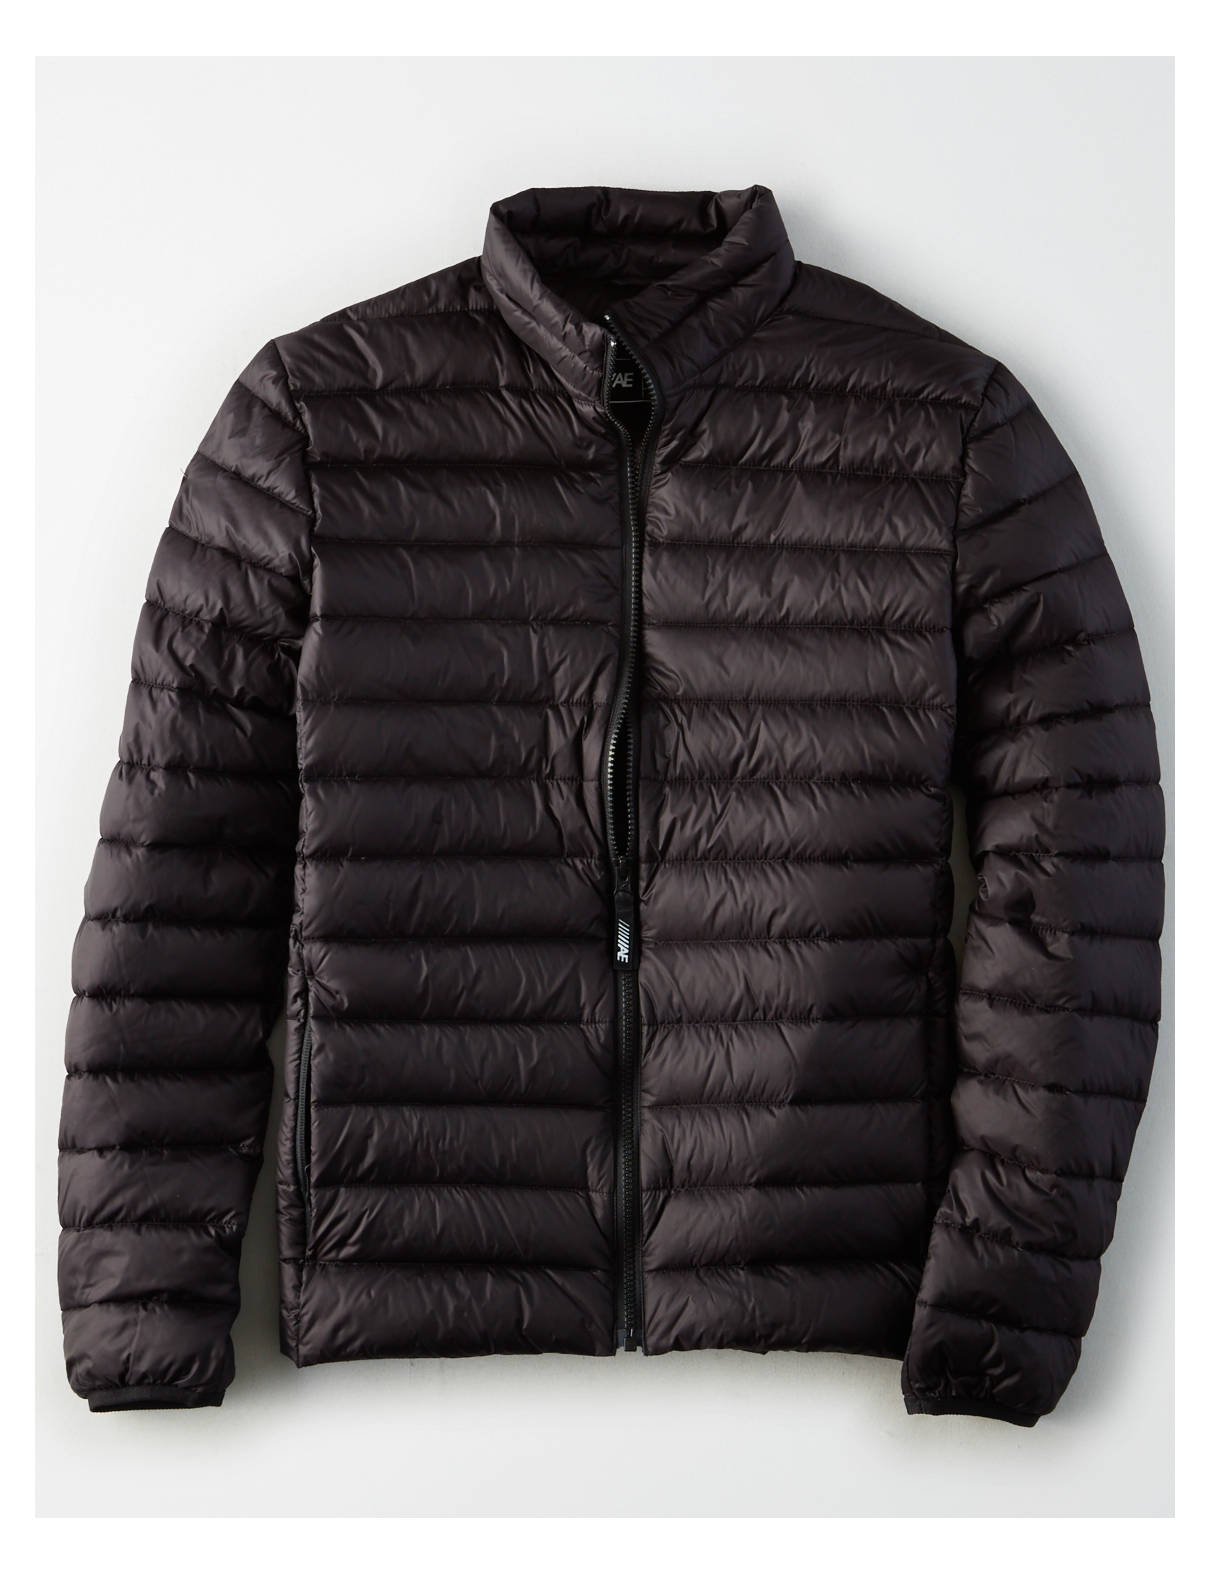 Jackets for Men   American Eagle Outfitters